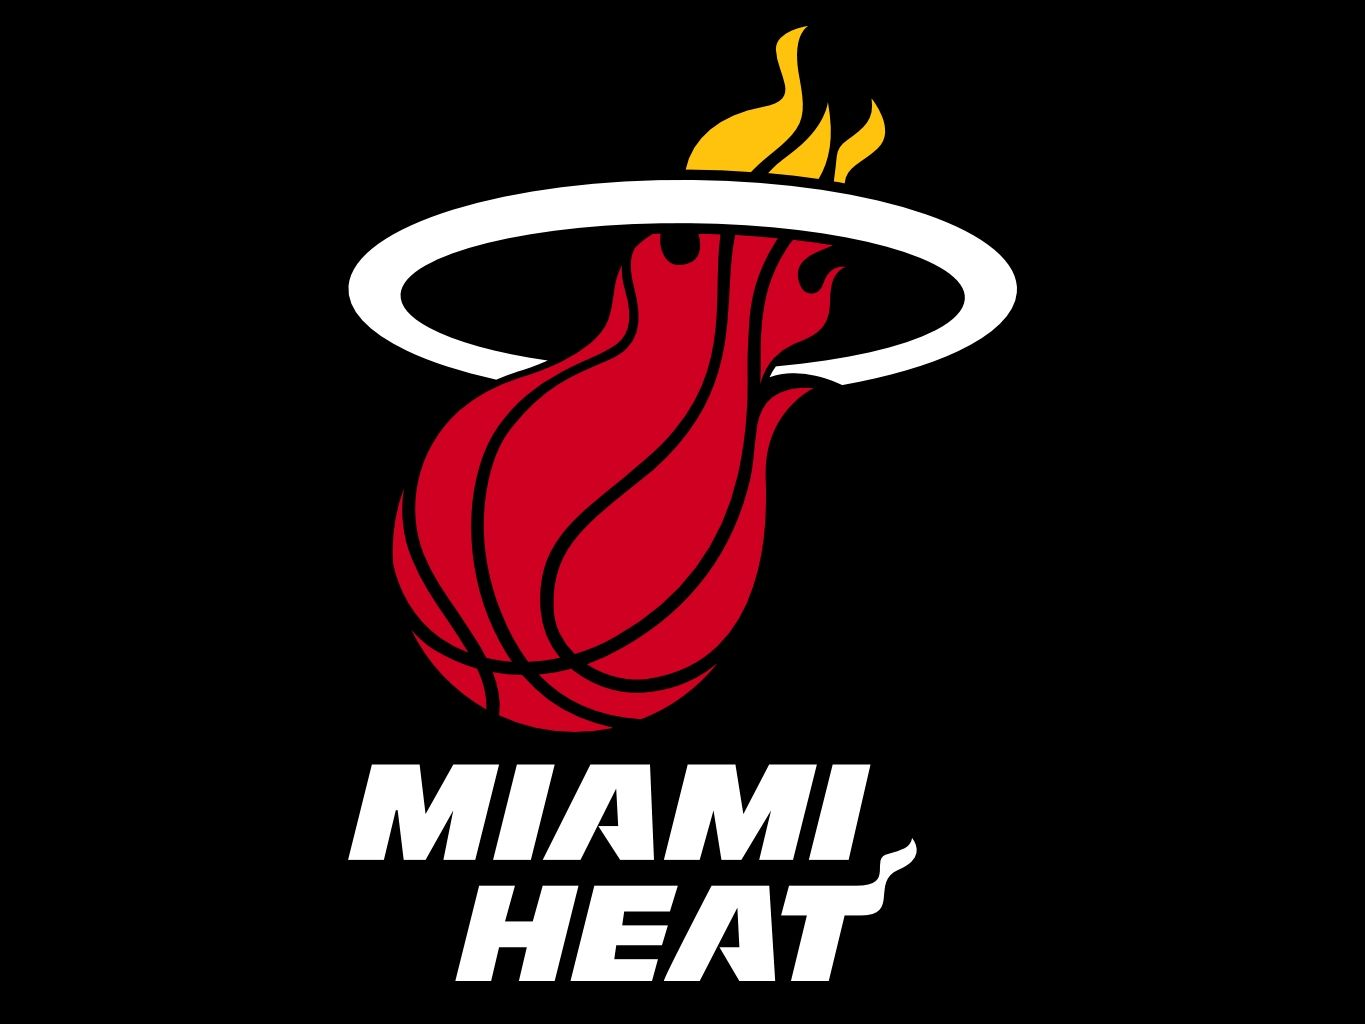 miami heat miami heat one of my dreams is to play on miami heat rh pinterest com heart logos images heat logo images